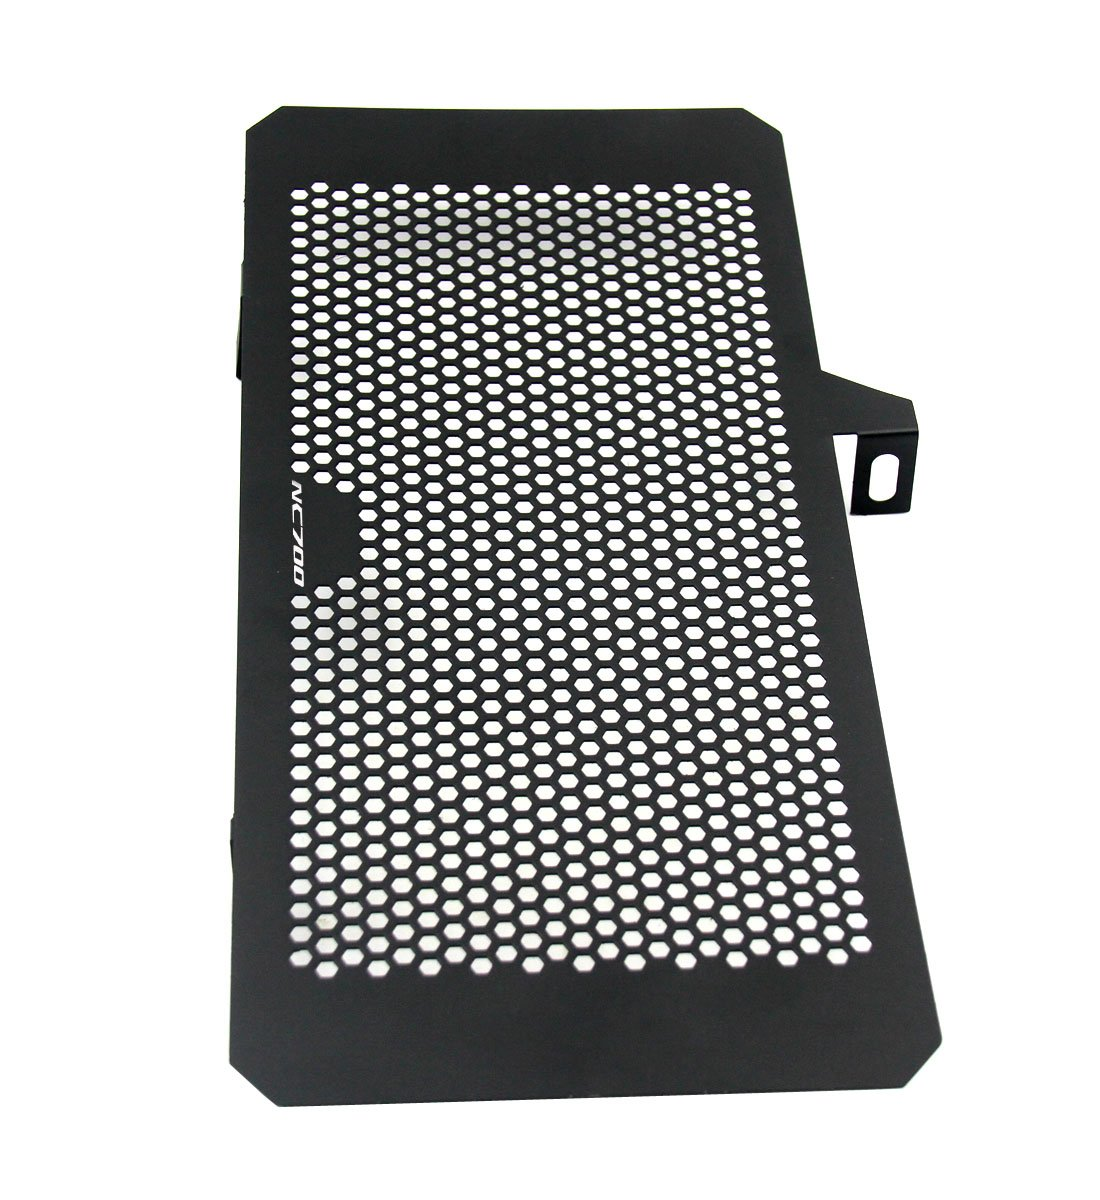 Rogue Moto Radiator Grille Grill Guard Protective Grill For HONDA NC700S NC700X by Rogue Moto (Image #2)